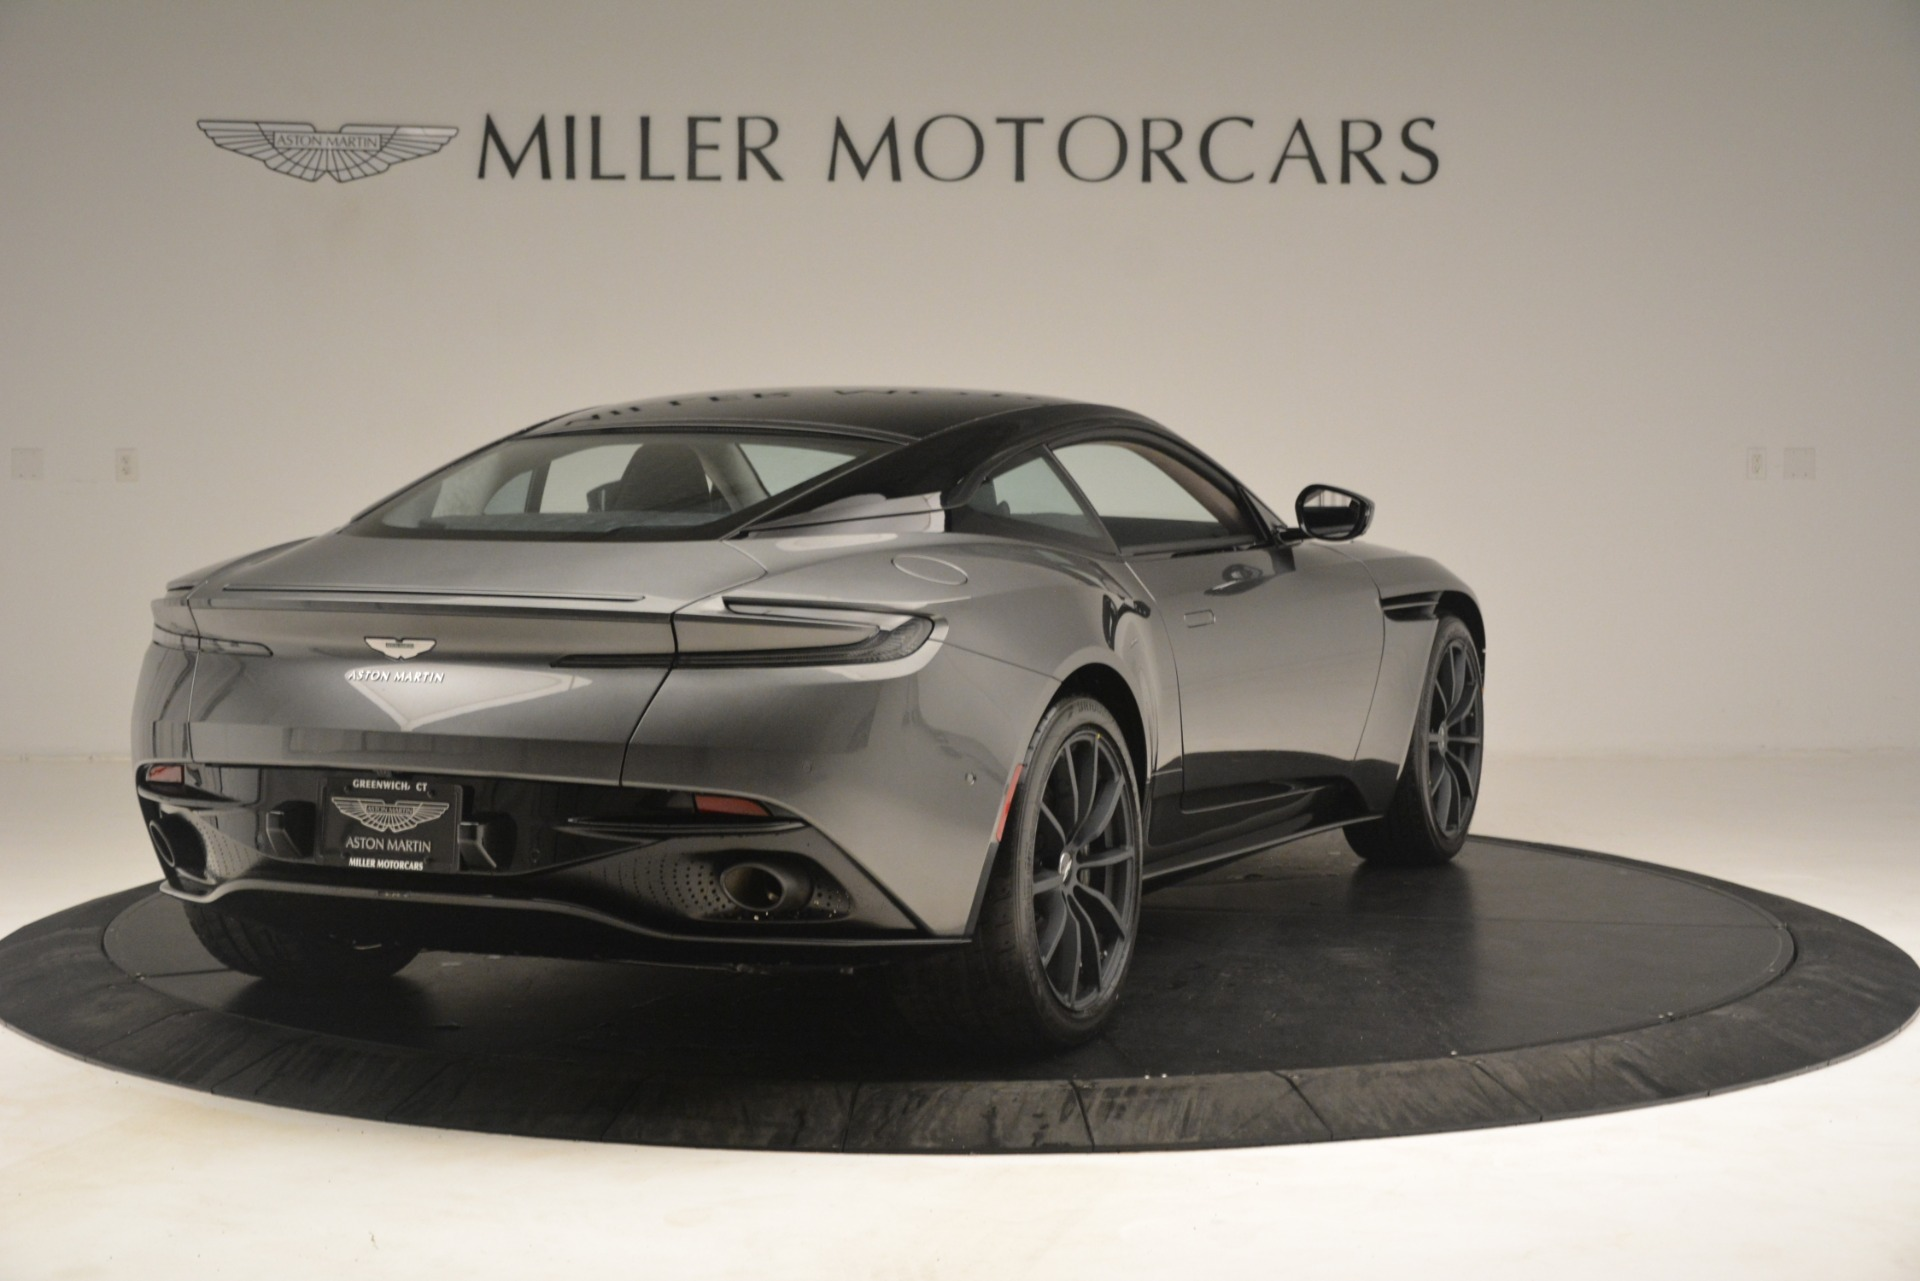 New 2019 Aston Martin DB11 V12 AMR Coupe For Sale In Westport, CT 3123_p7